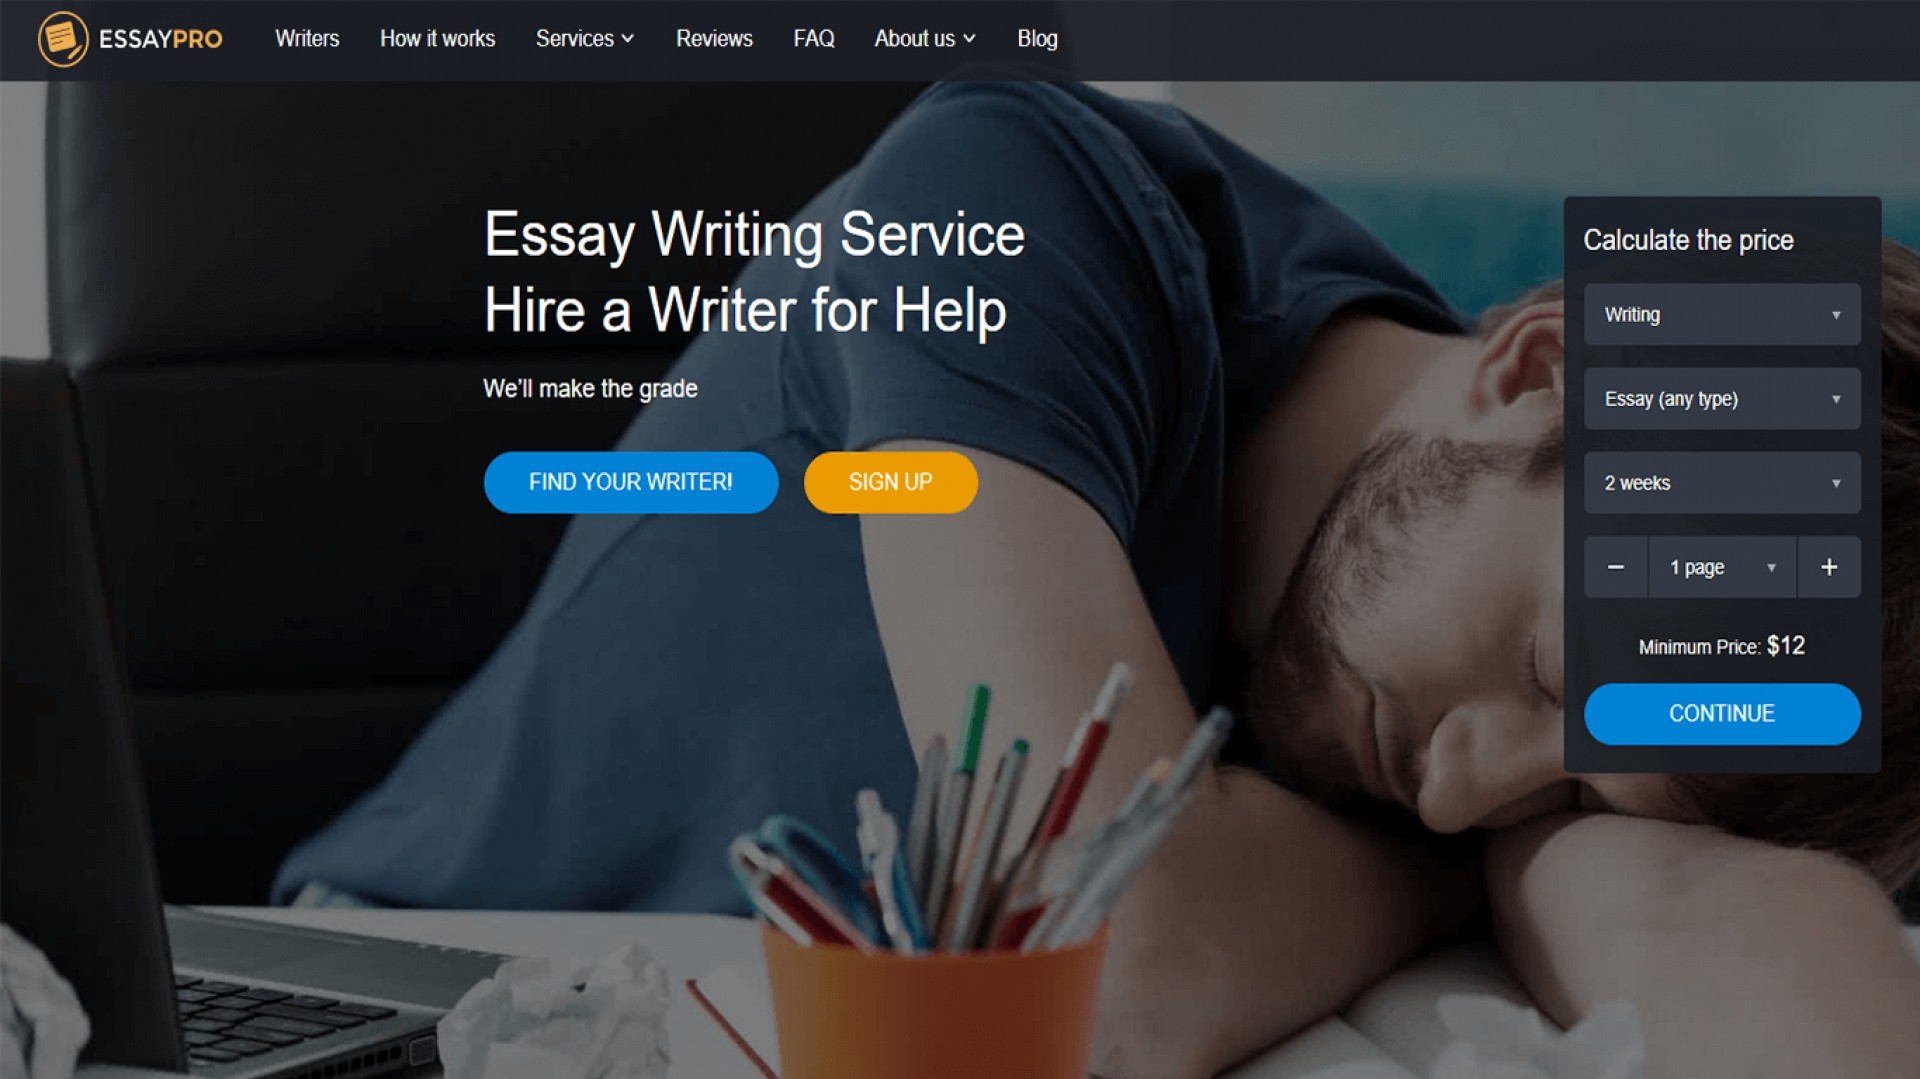 012 Essay Pro Reviews Mastpqsm1b9fkiynwrtp Outstanding Writer Writing 1920